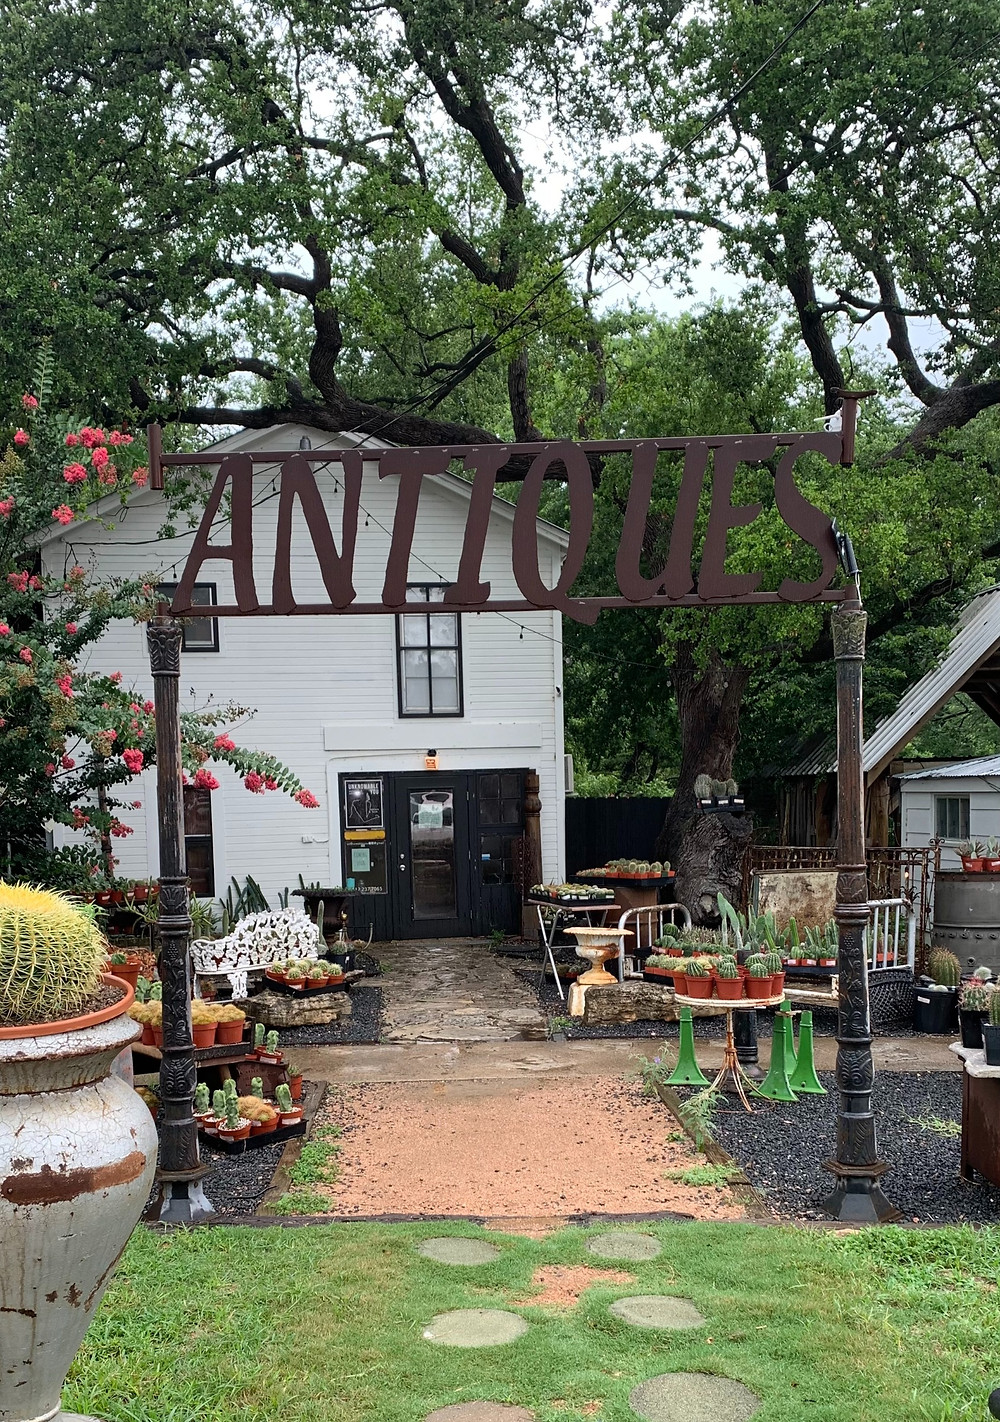 Local antique store in downtown Wimberley, TX.